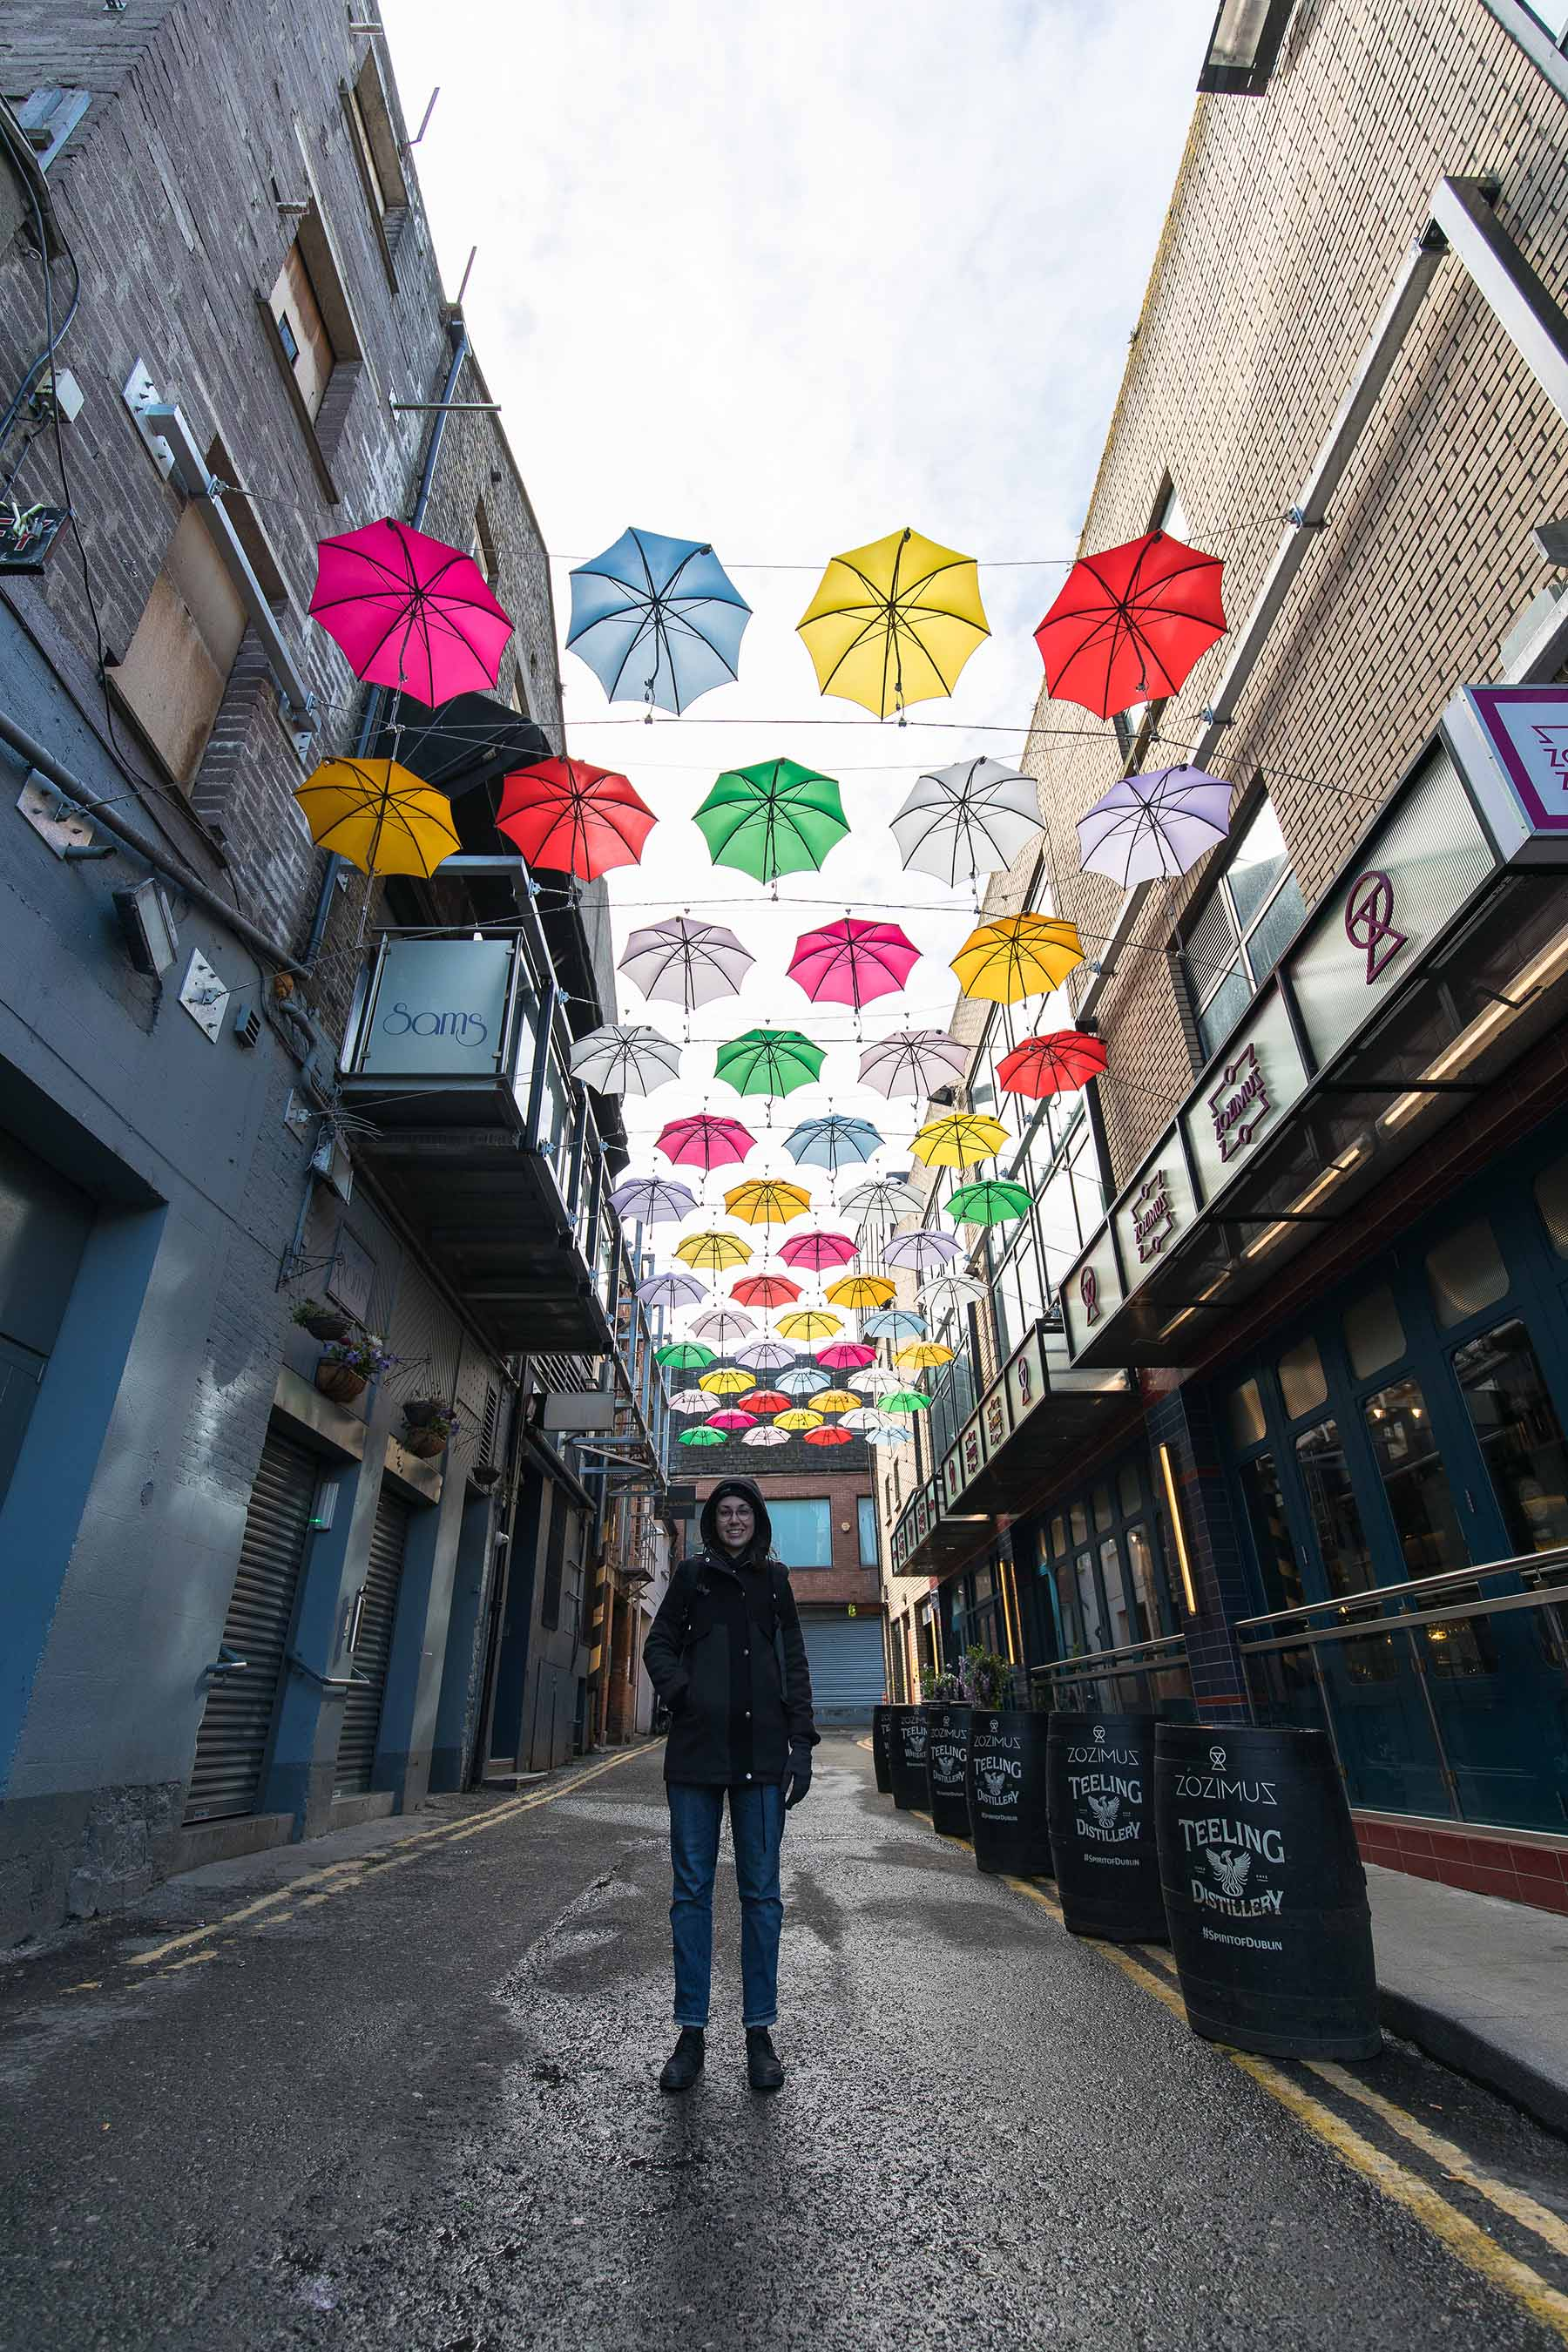 dublin-ireland-europe-umbrella-street-famous-place-city-pub-themovinglens-colourfull-travel-photography-destination-life